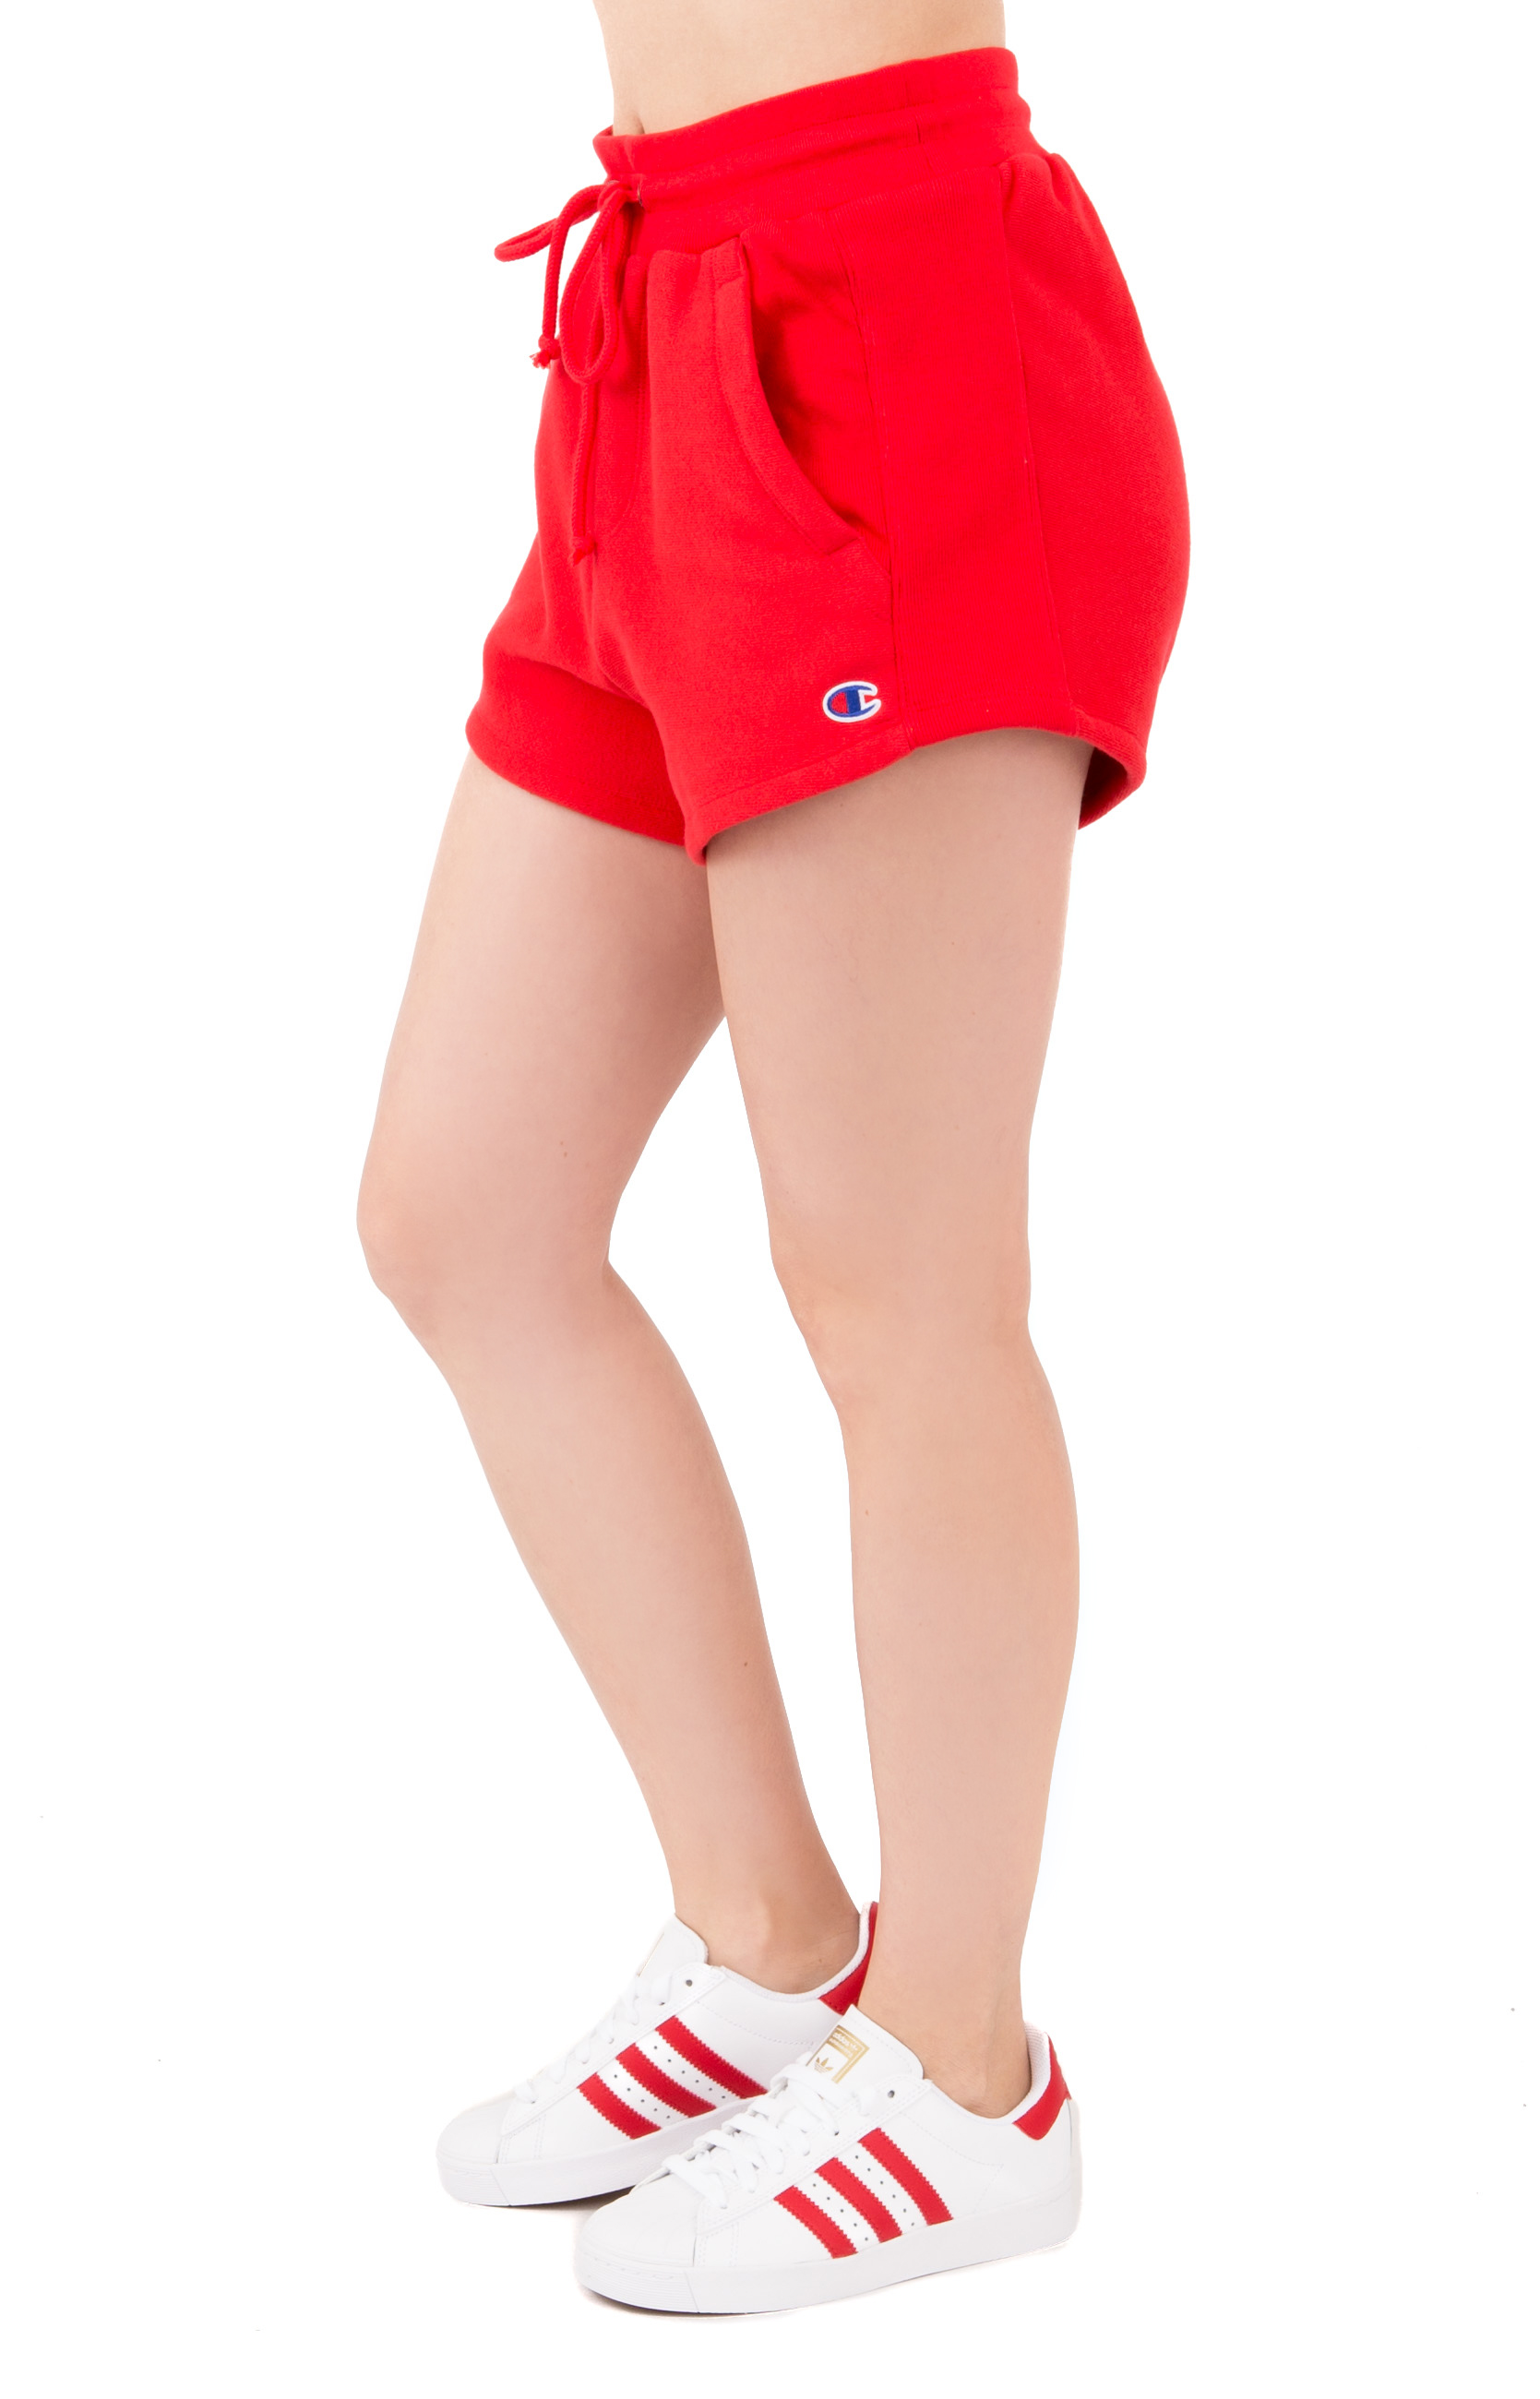 Reverse Weave Shorts - Red Spark